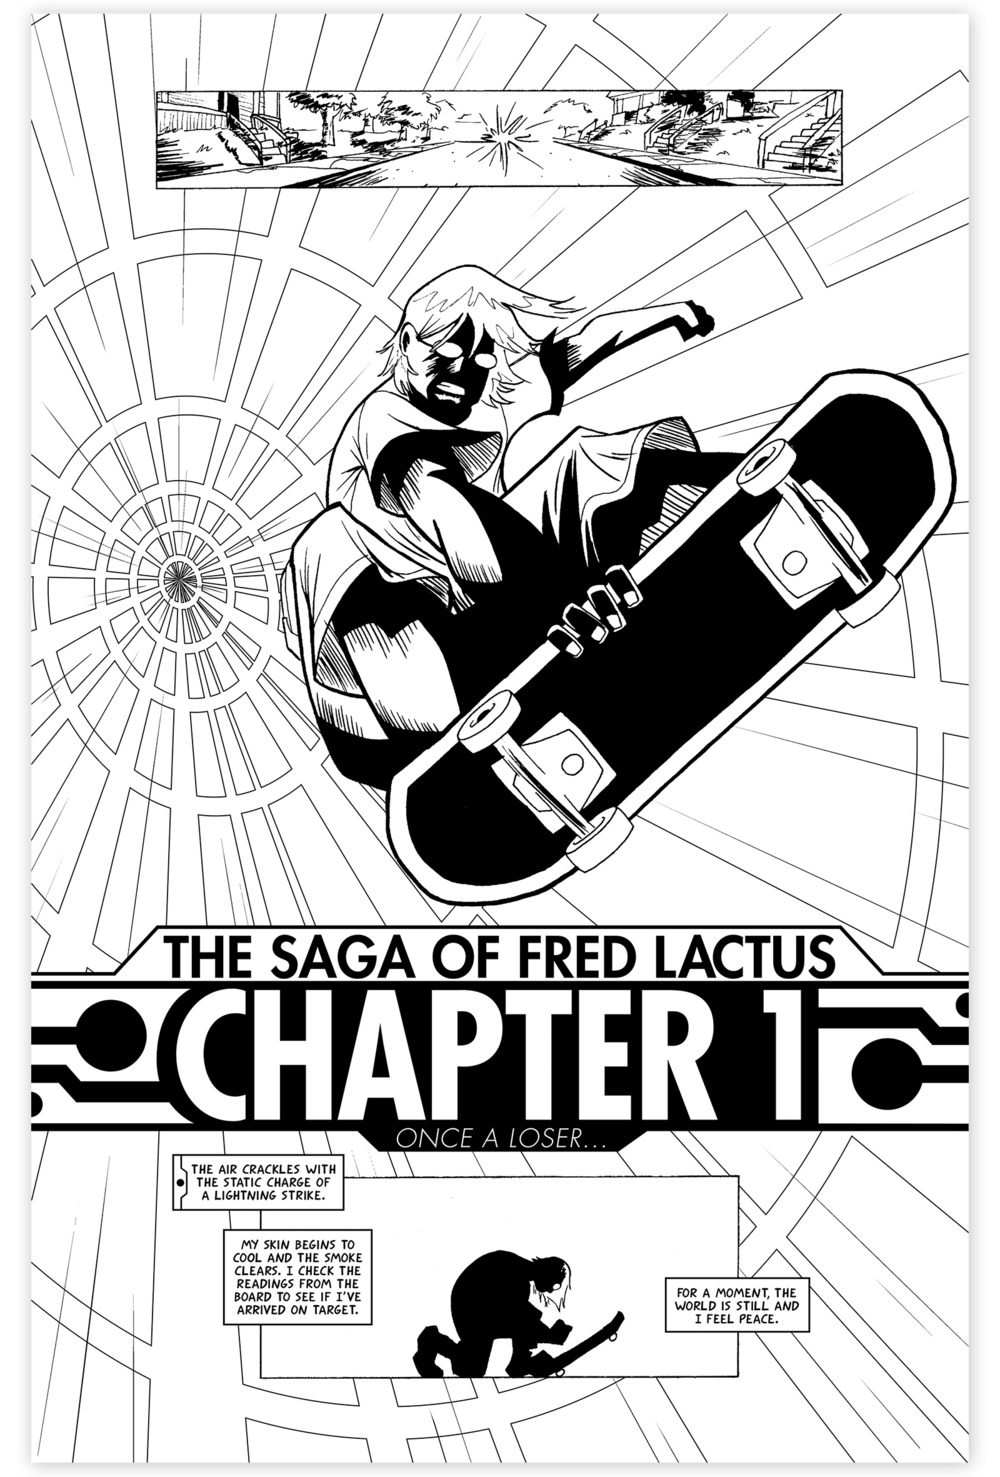 06-The-Saga-of-Fred-Lactus-1-2